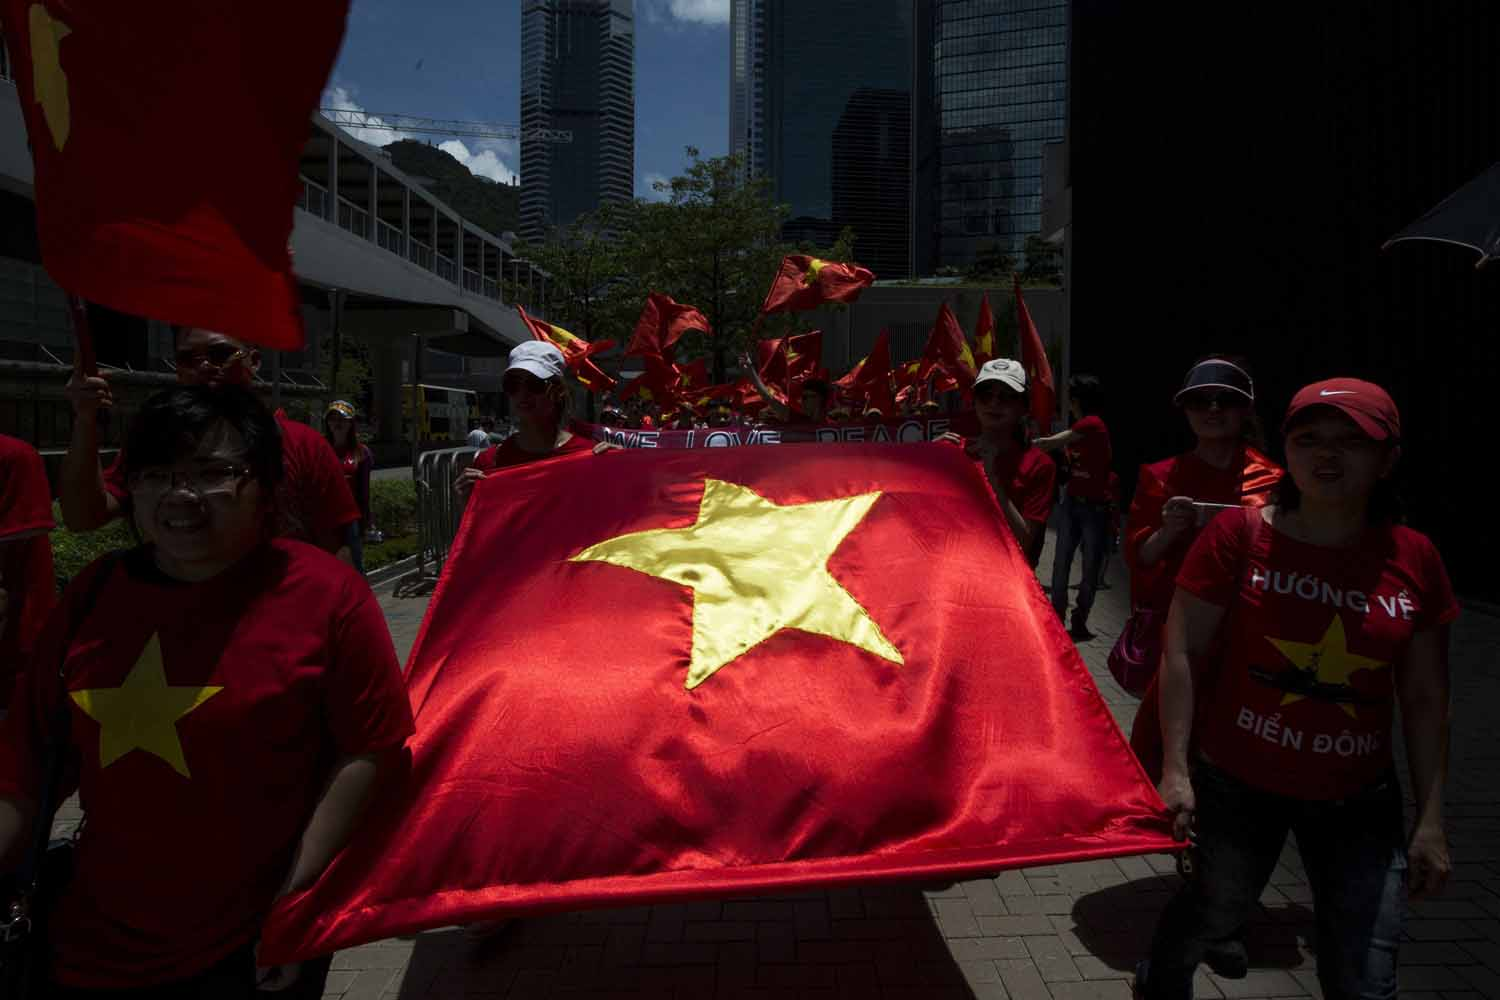 Hong Kong based Vietnamese demonstrators carry Vietnam's flag during a protest against China's territory claim in Hong Kong May 25, 2014. Around 200 people marched on Sunday to declare Paracel Islands belong to Vietnam. REUTERS/Tyrone Siu (CHINA - Tags: POLITICS CIVIL UNREST TPX IMAGES OF THE DAY)